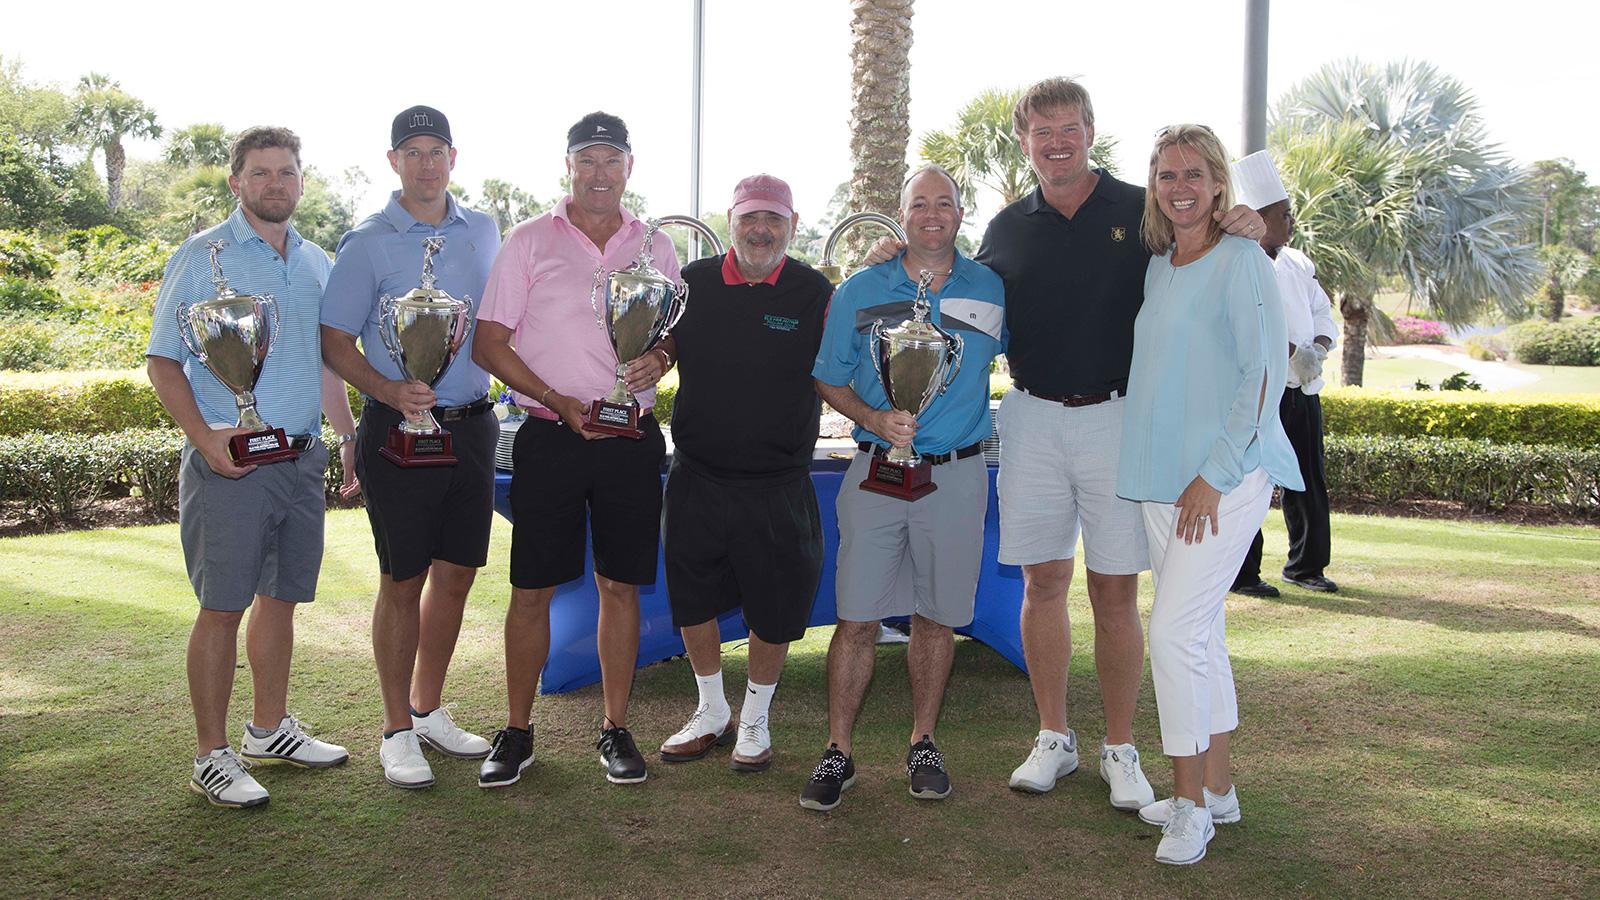 Marvin R. Shanken, center, and Ernie and Liezl Els, far right, present trophies to the winning groups.